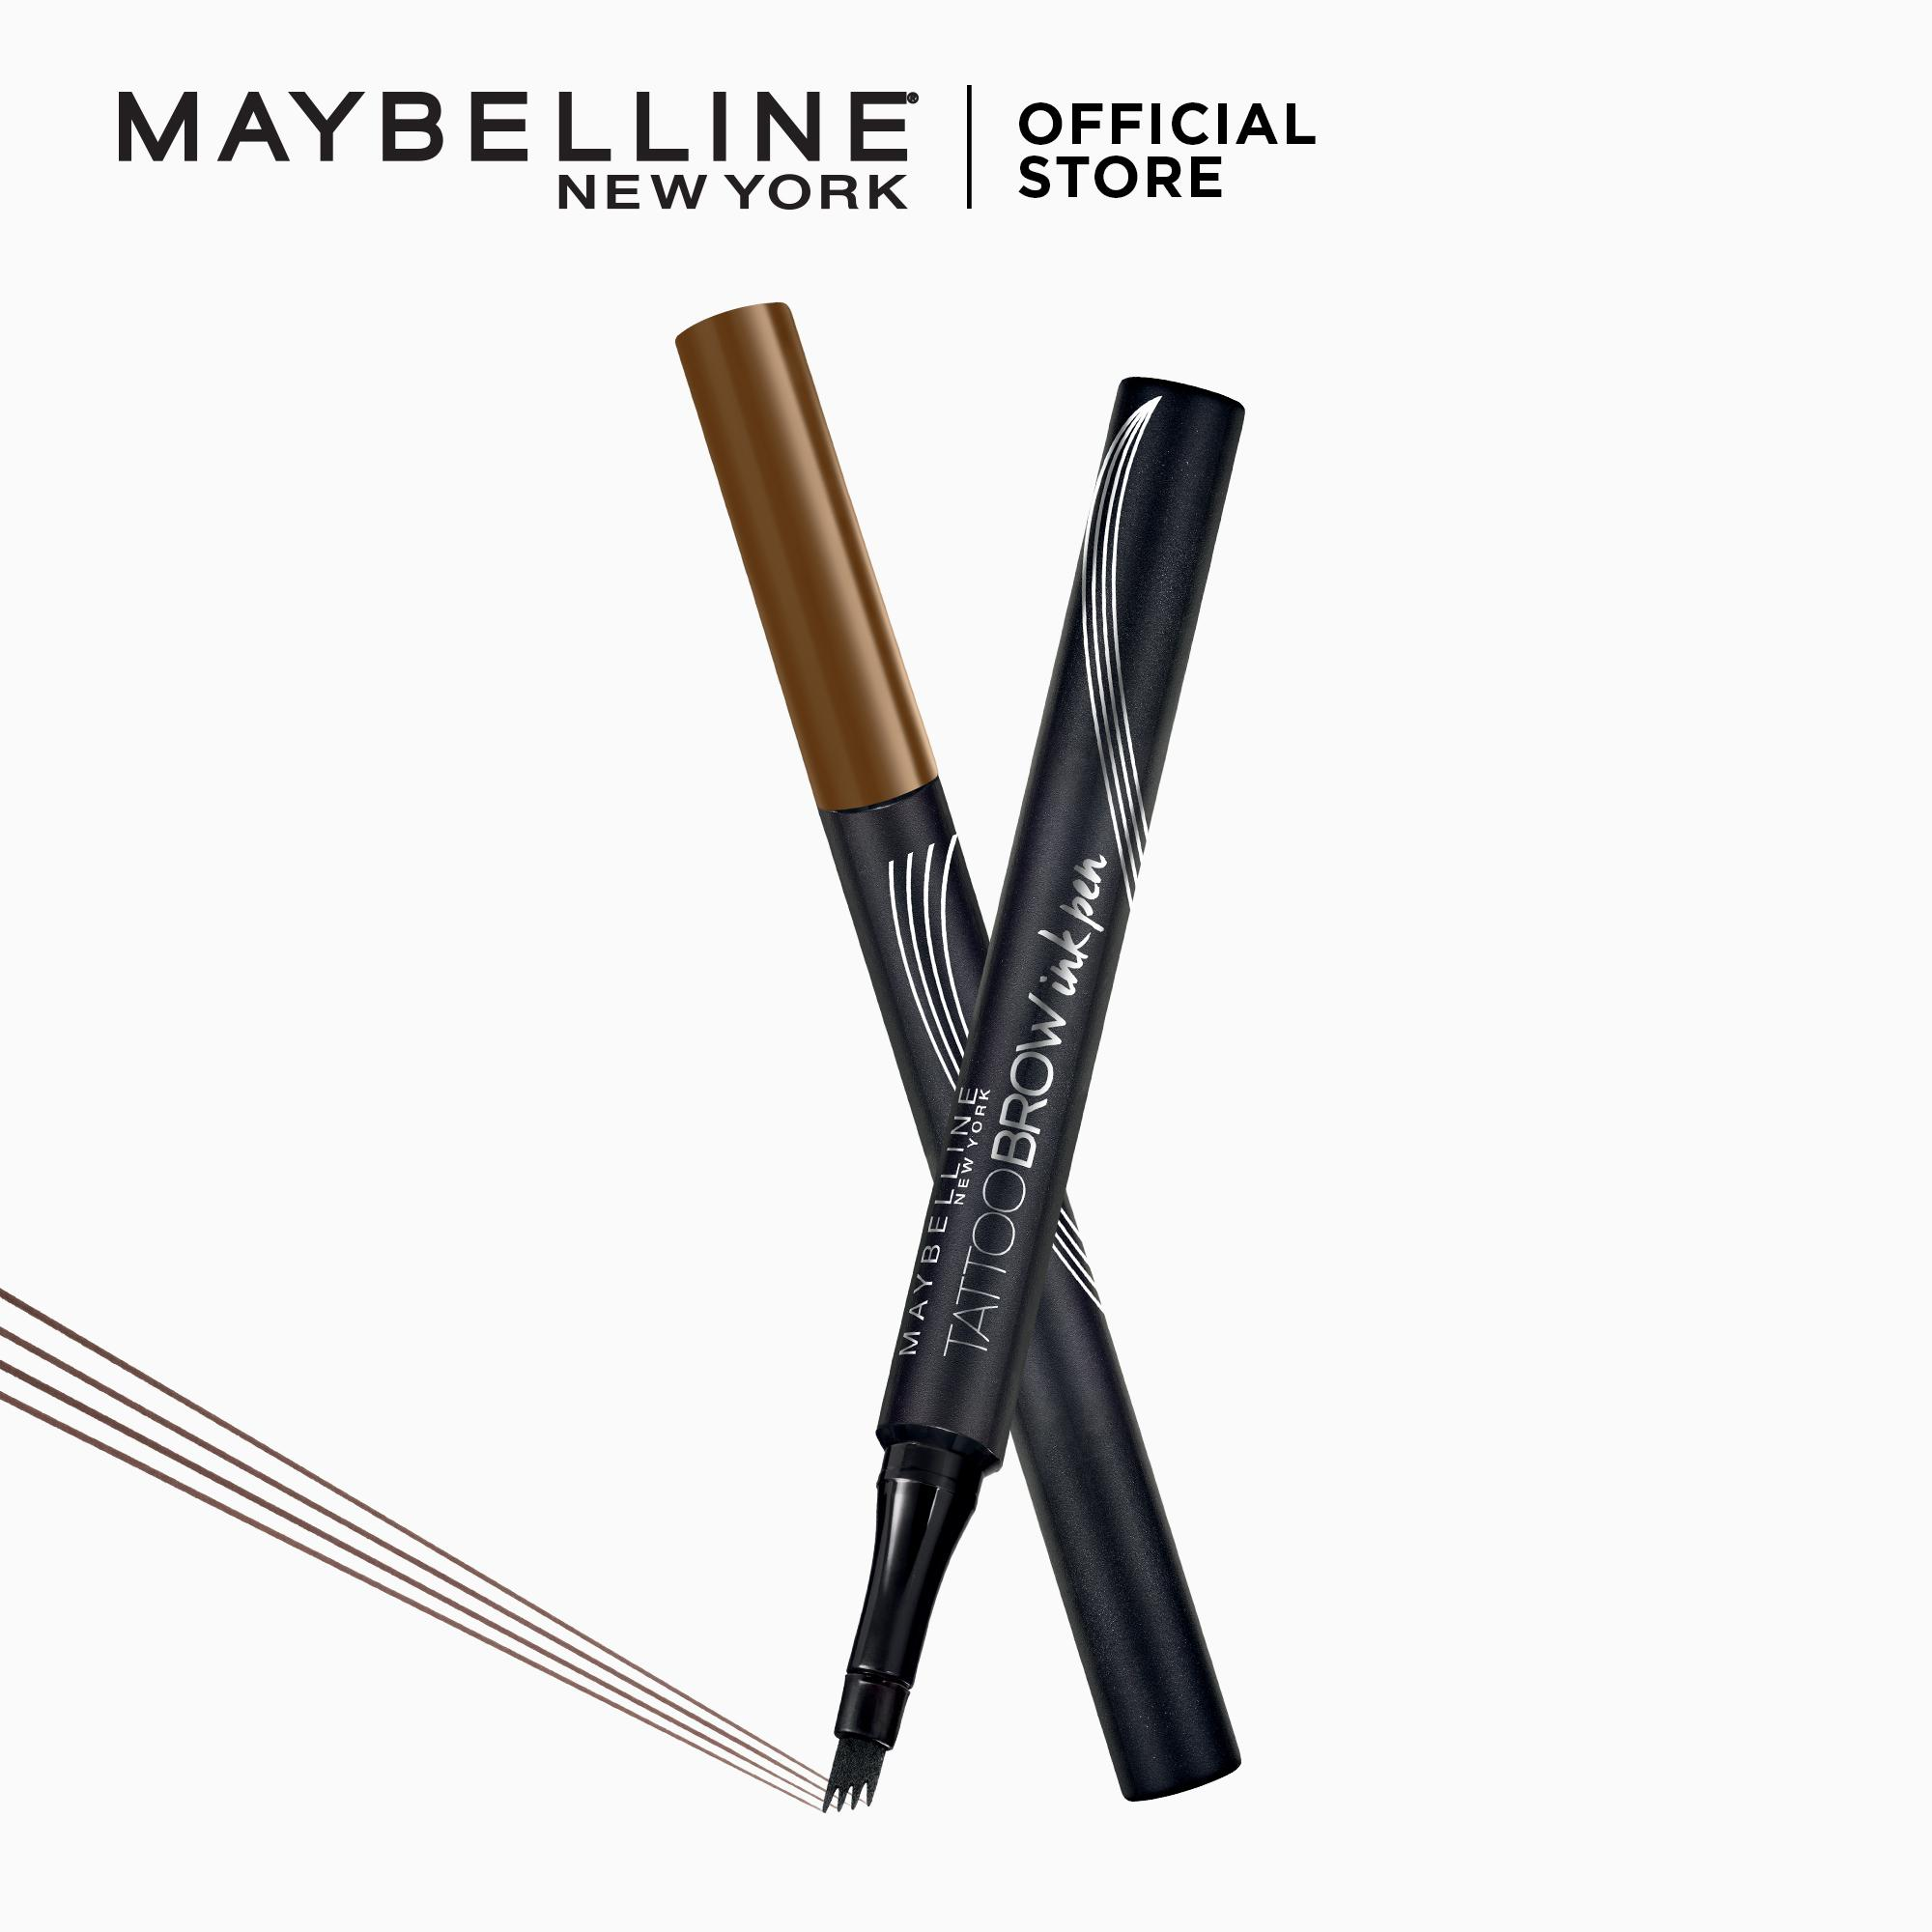 Tattoo Brow Ink Pen - [Long-Lasting Brows] by Maybelline Philippines